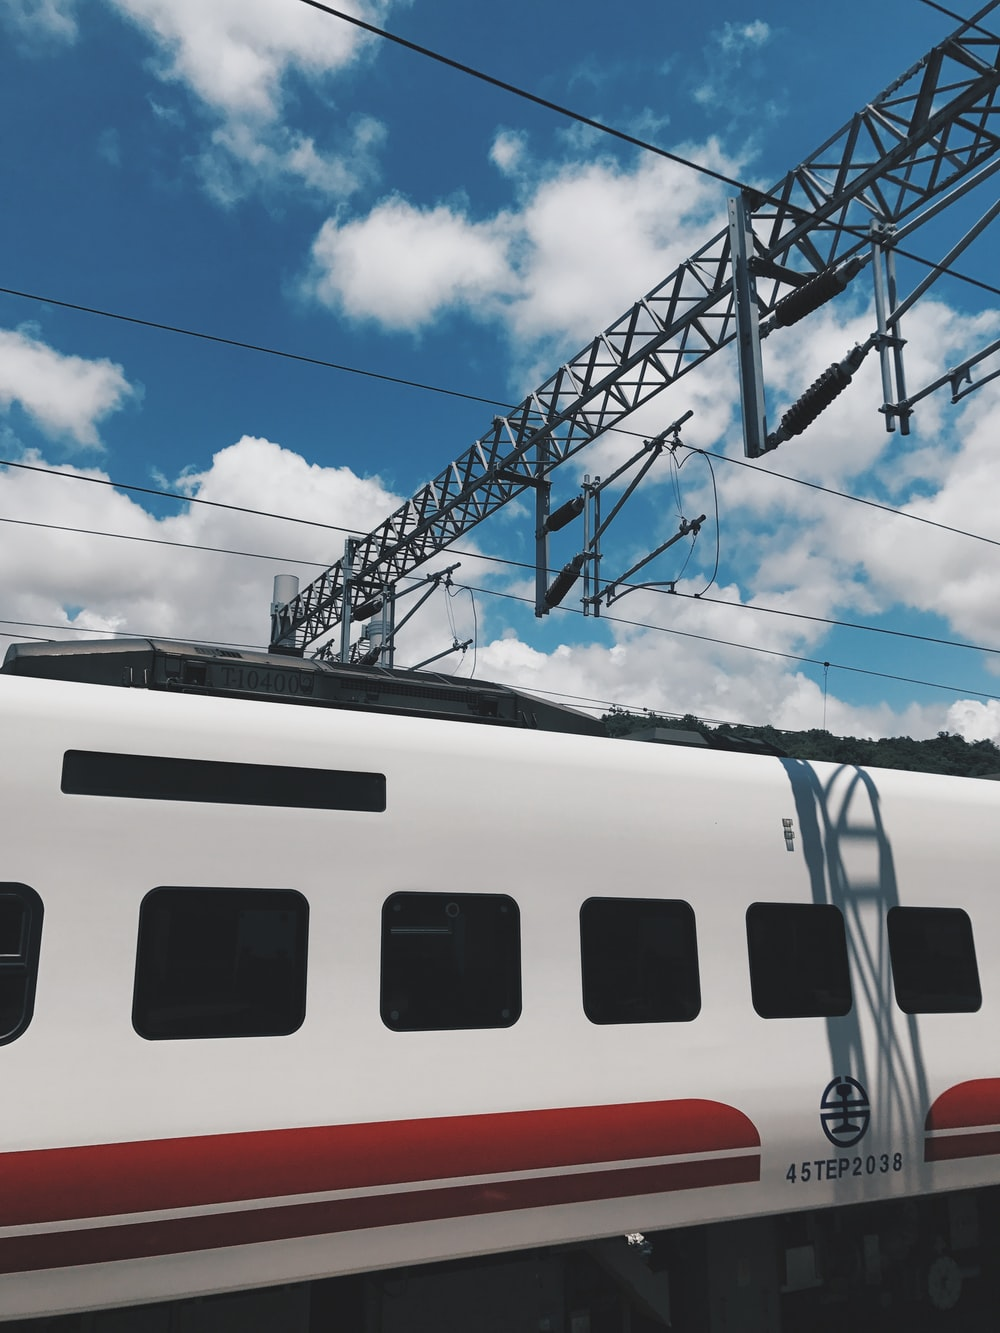 white and red train under blue sky